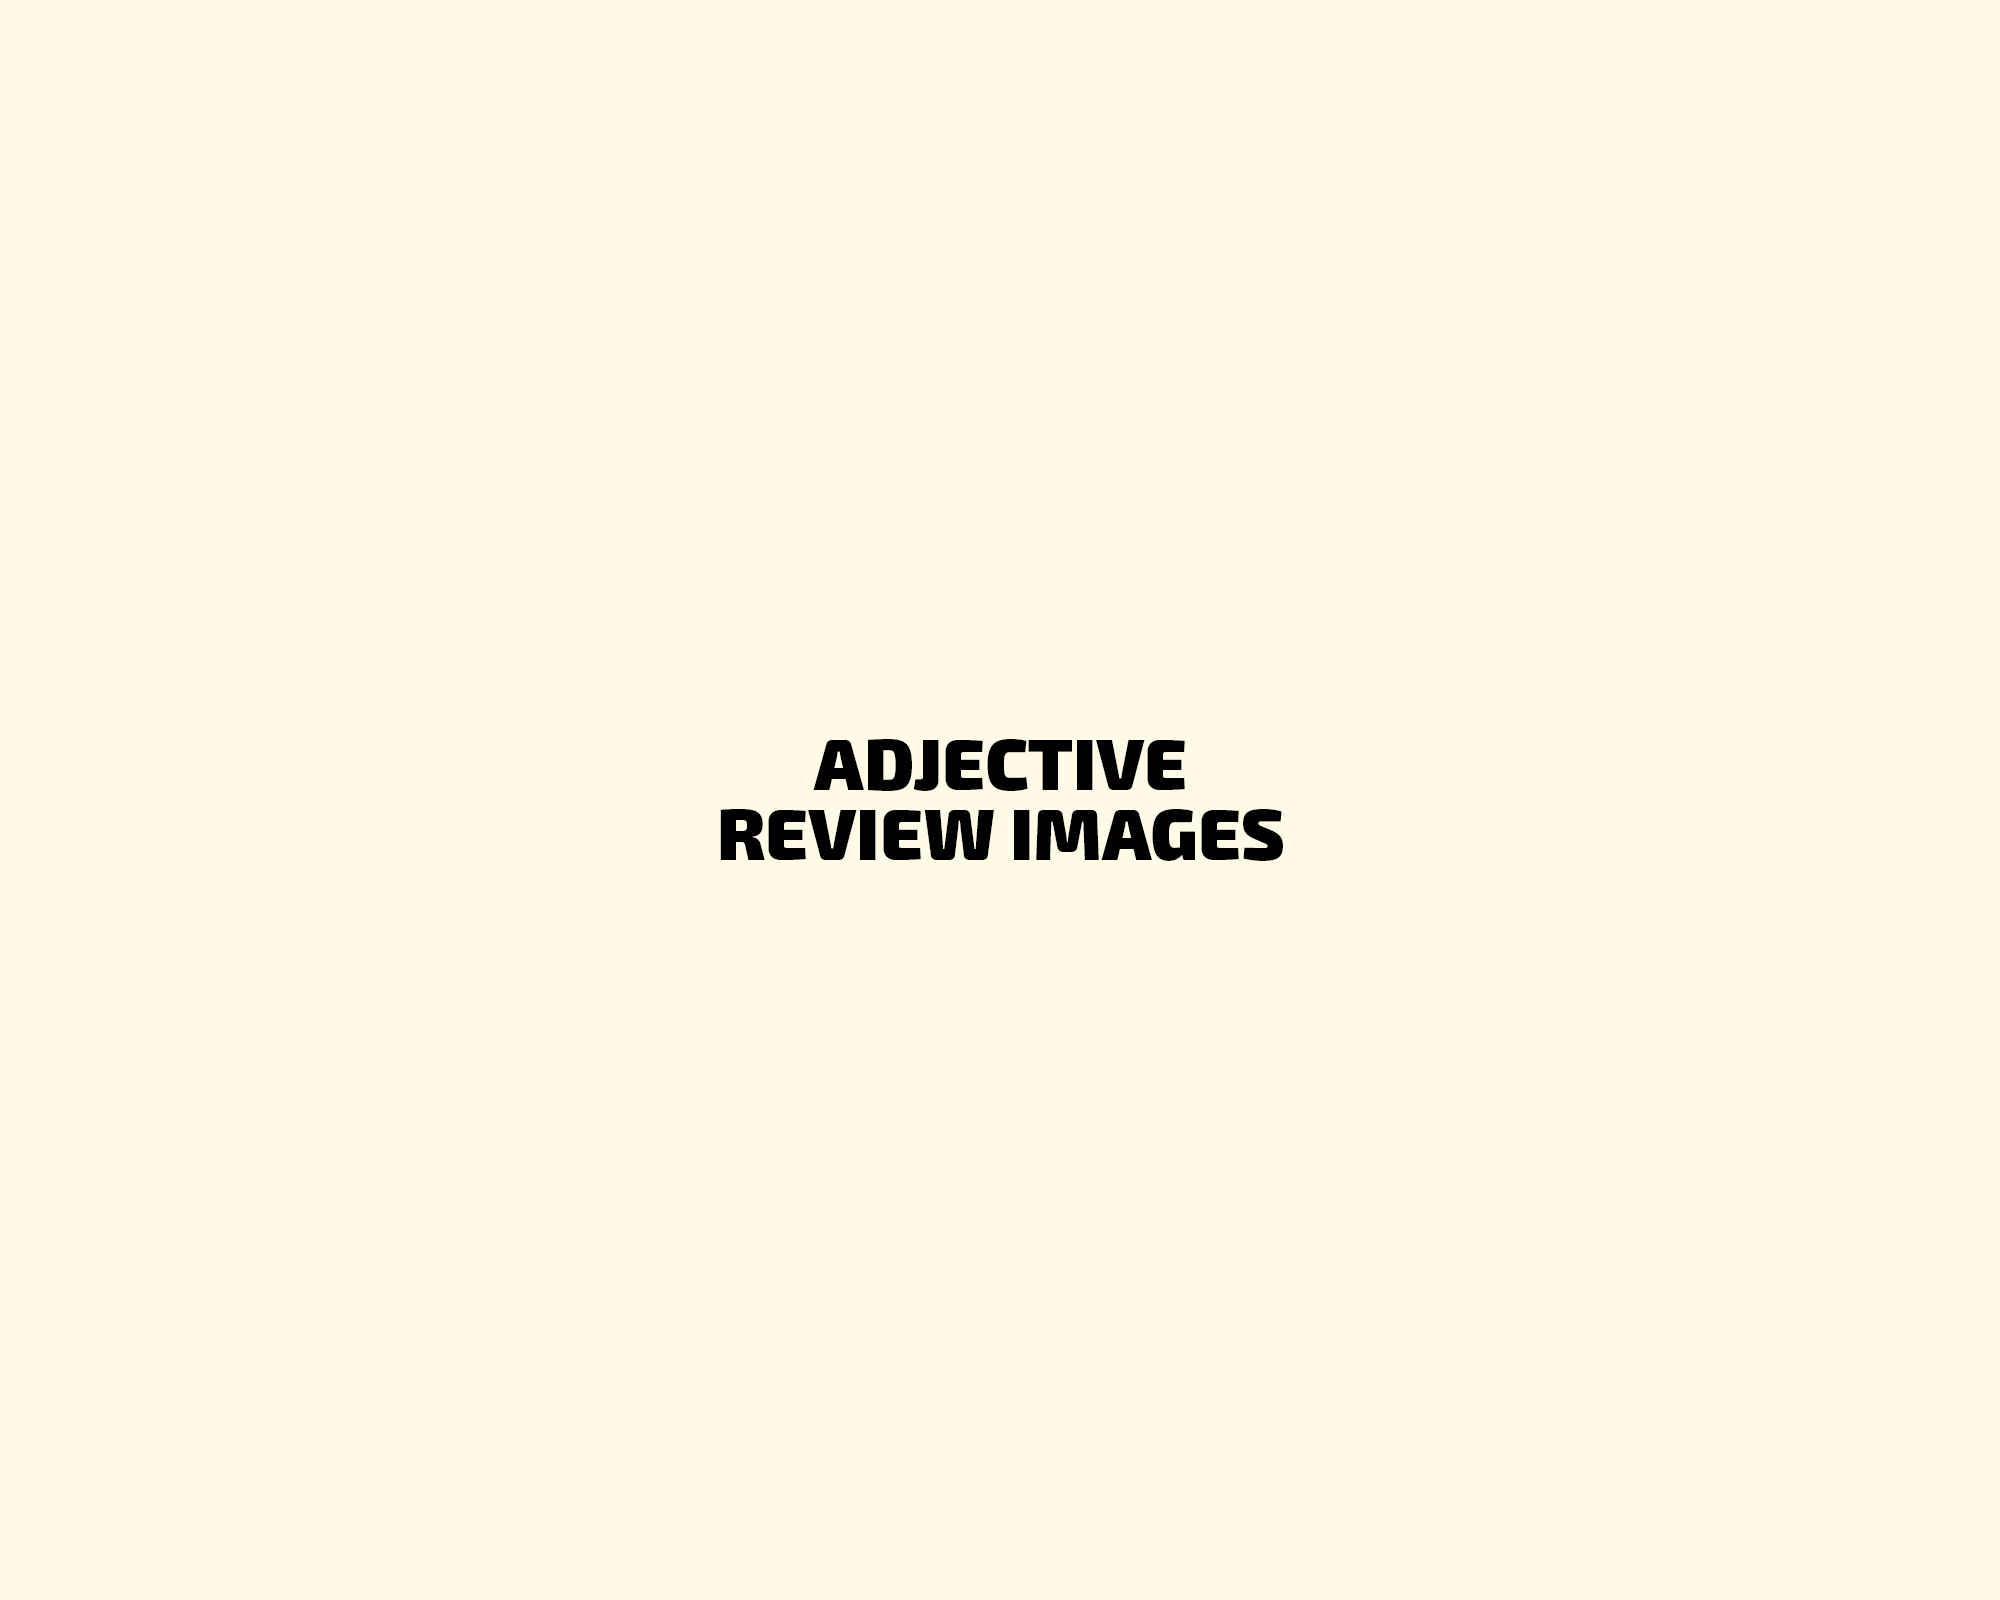 d-adjectives-gallery